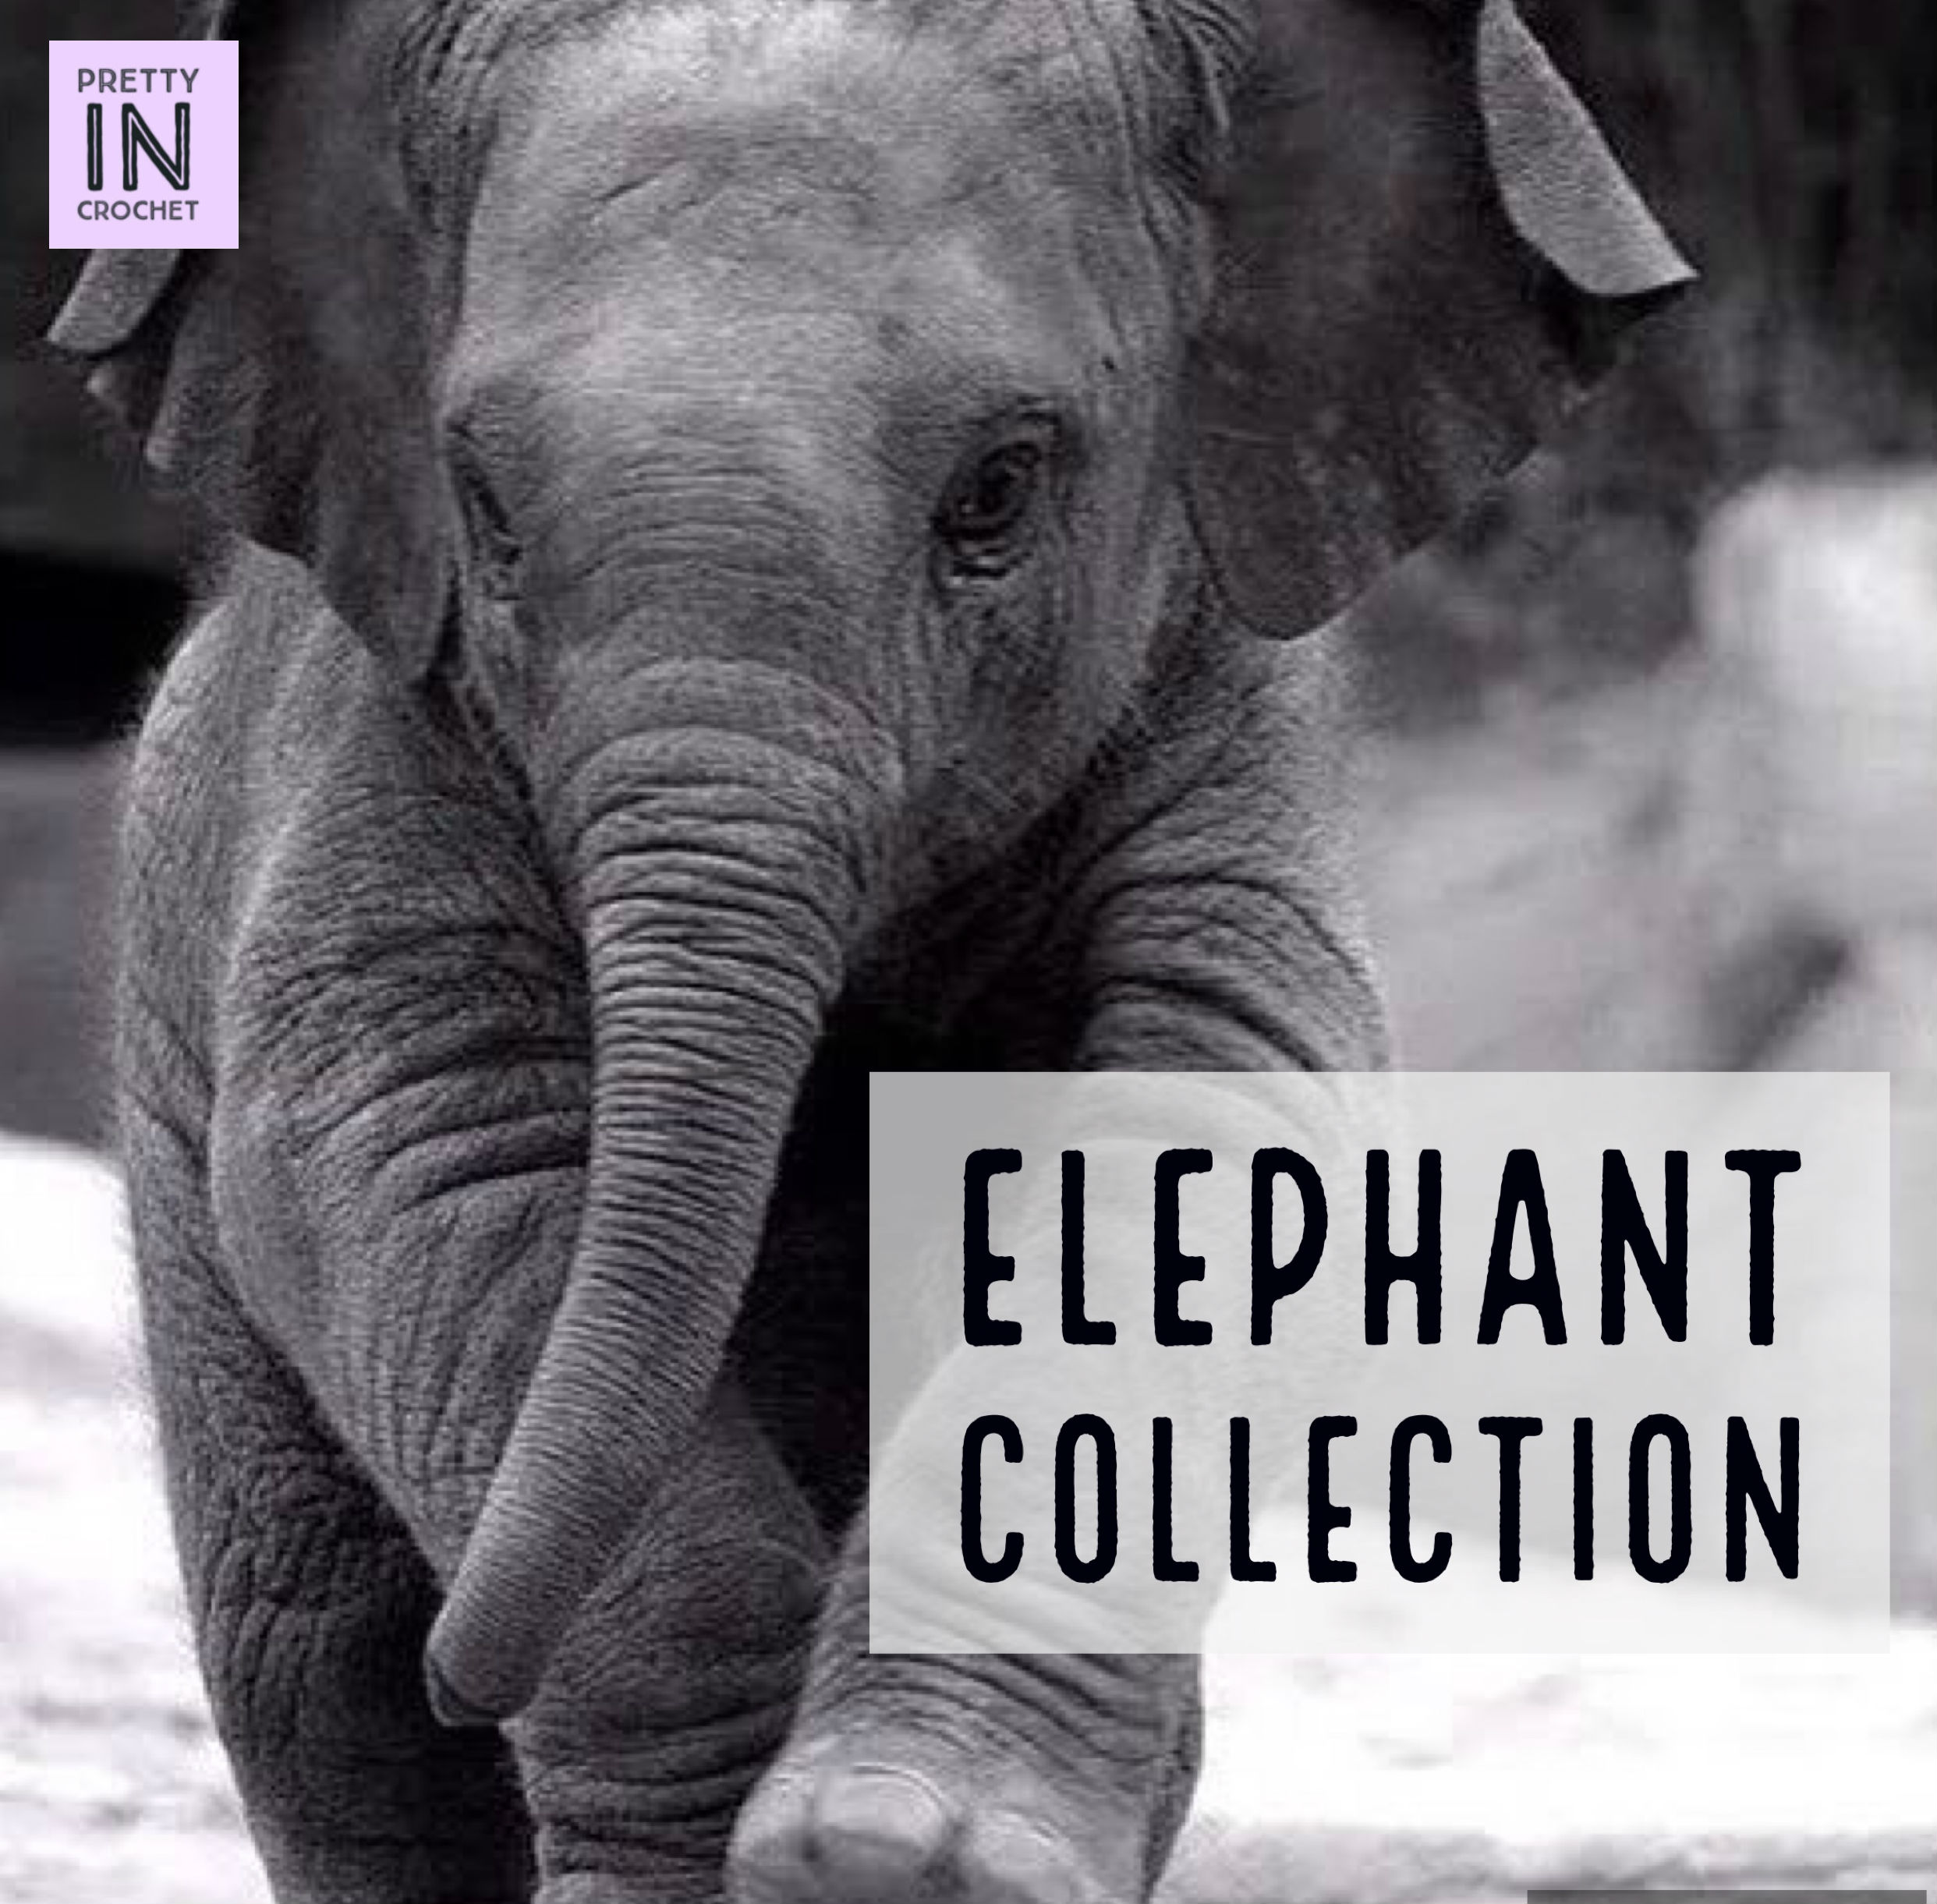 Elephant Collection: Hat and Diaper Outfit